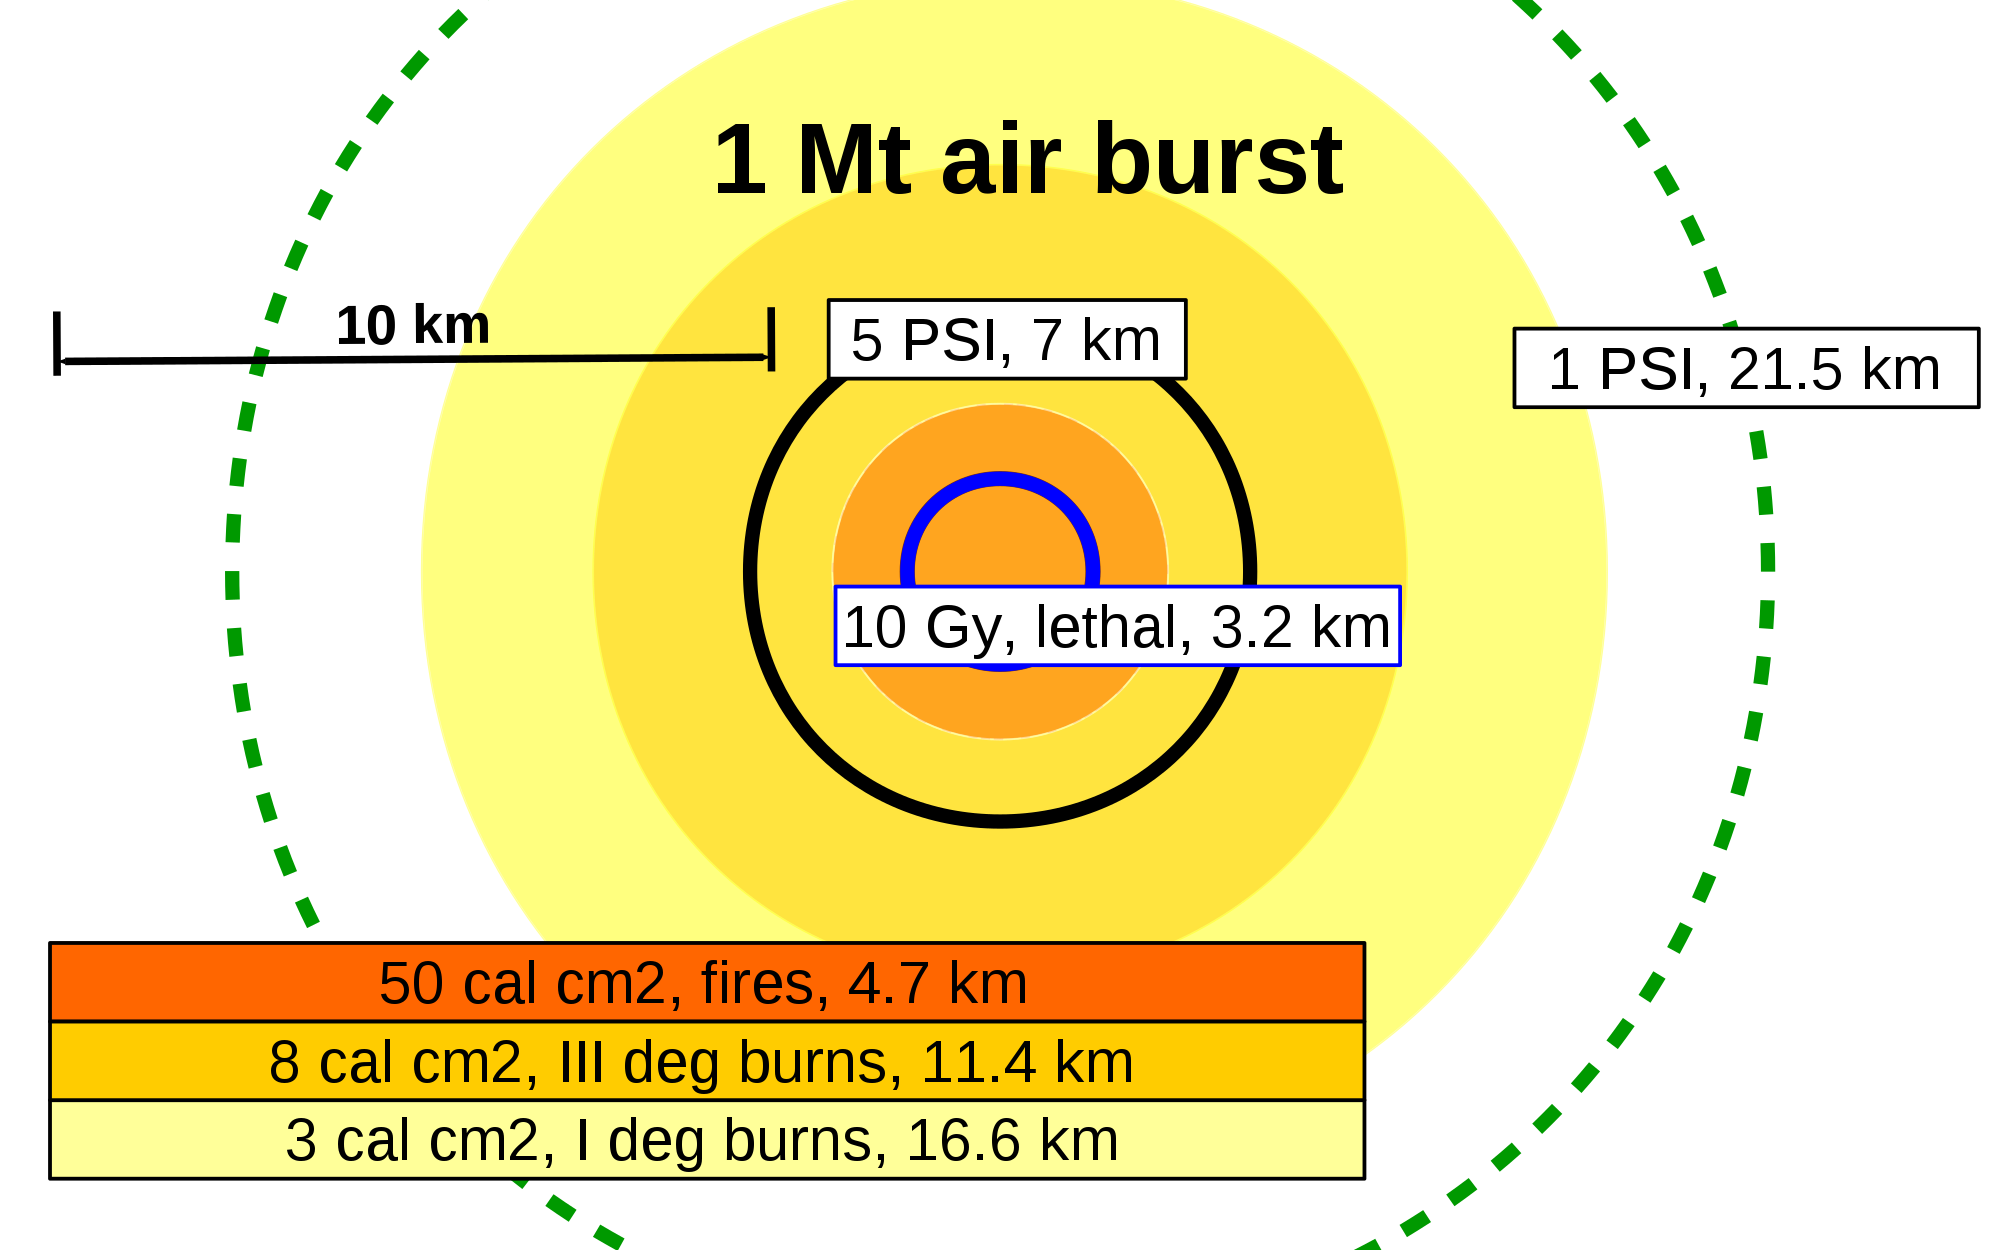 Air burst png. File effects of one